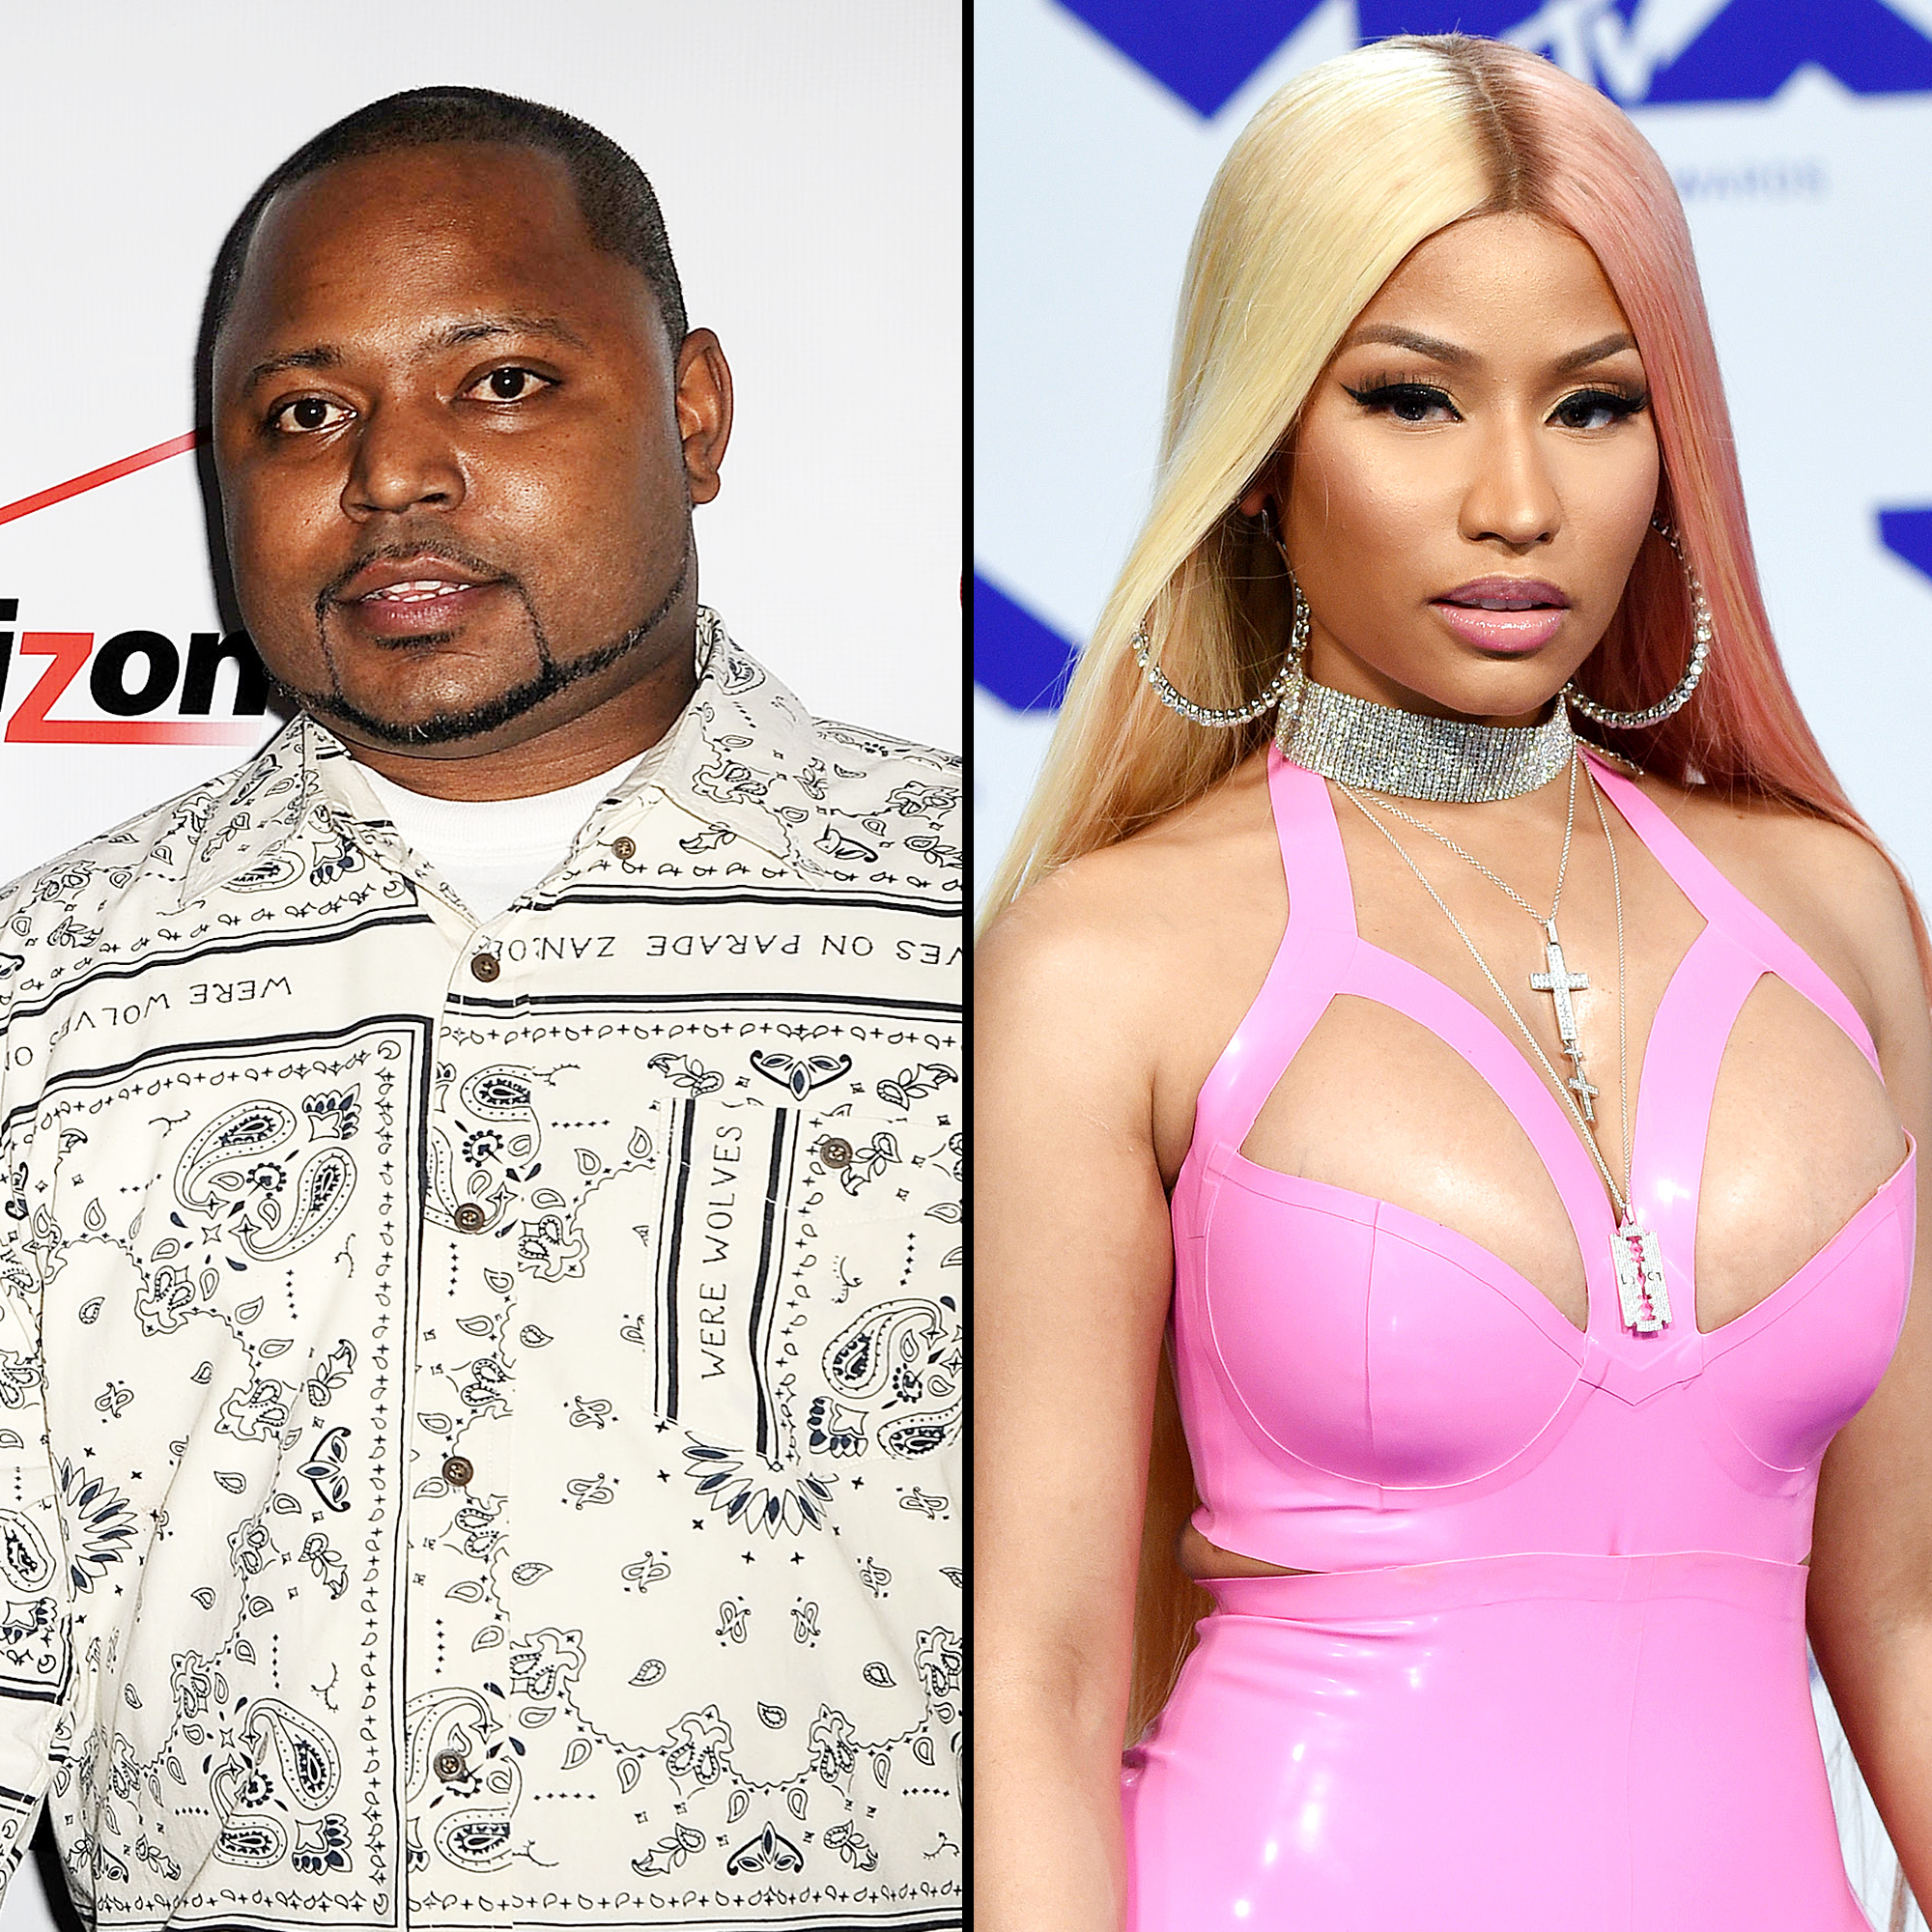 Nicki Minaj's Brother Found Guilty Of Sexually Assaulting A Child